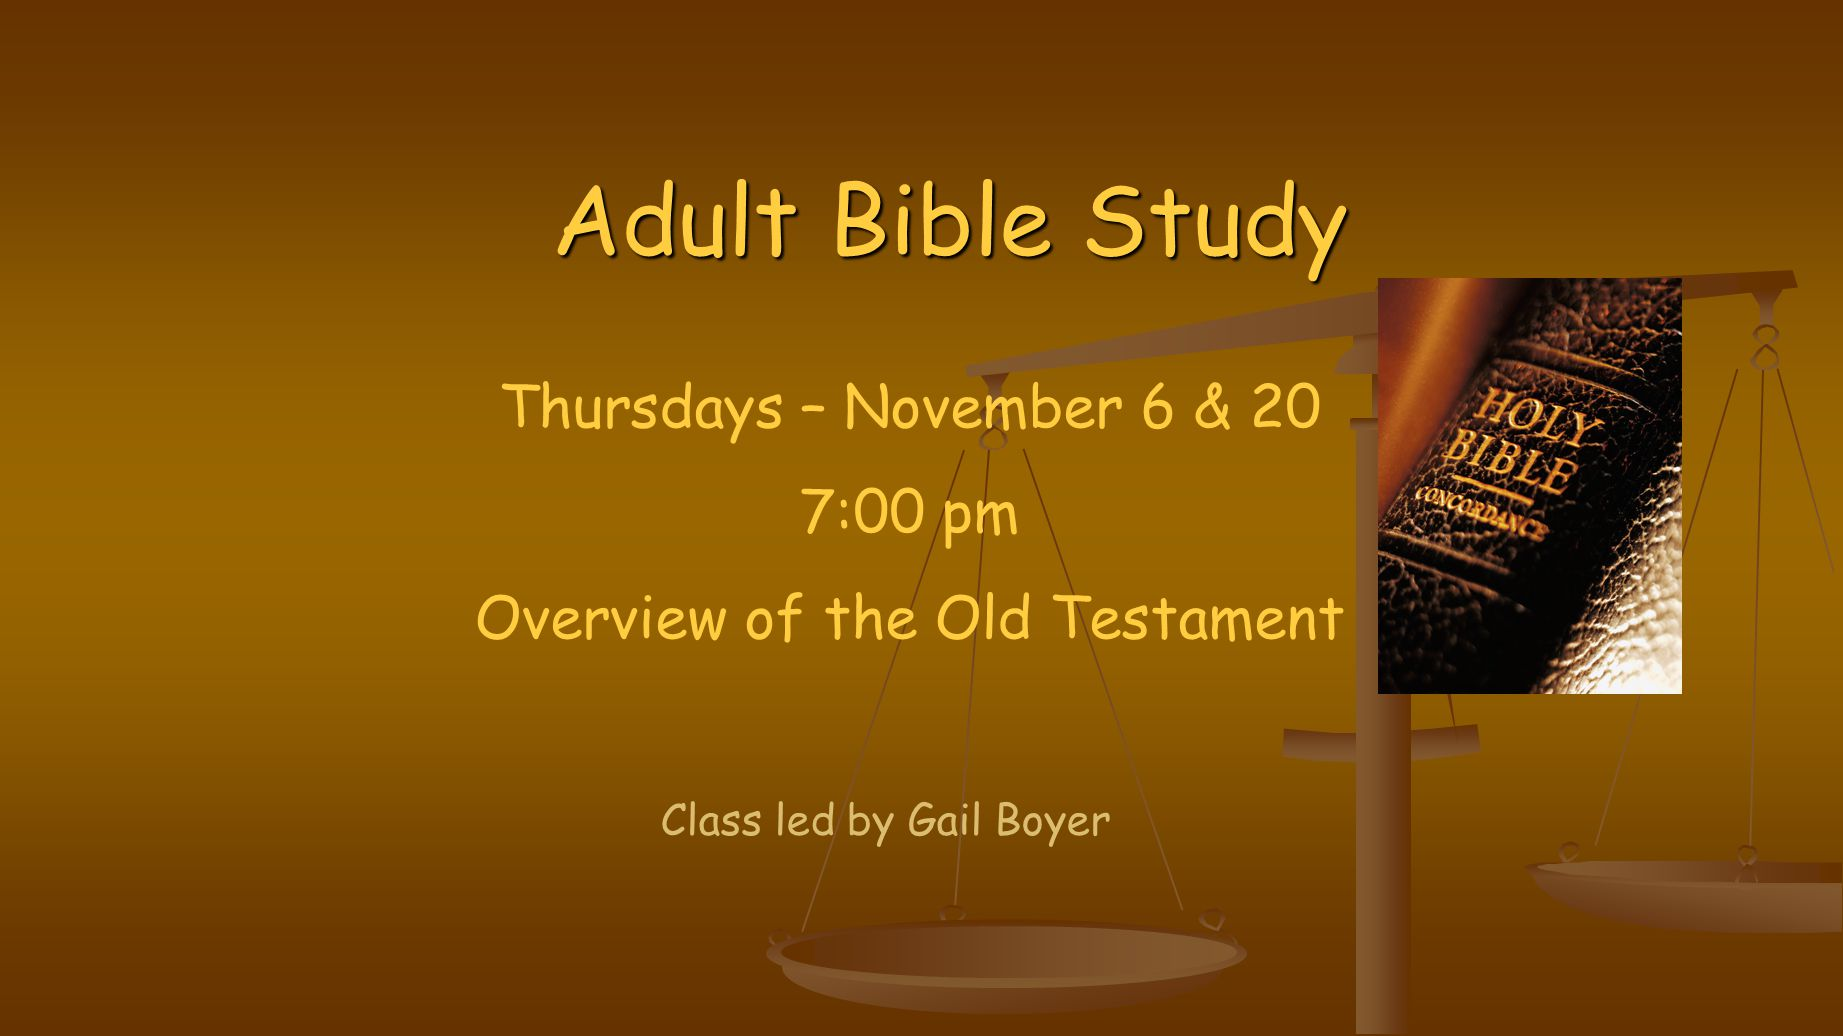 Adult Bible Study Class led by Gail Boyer Thursdays – November 6 & 20 7:00 pm Overview of the Old Testament